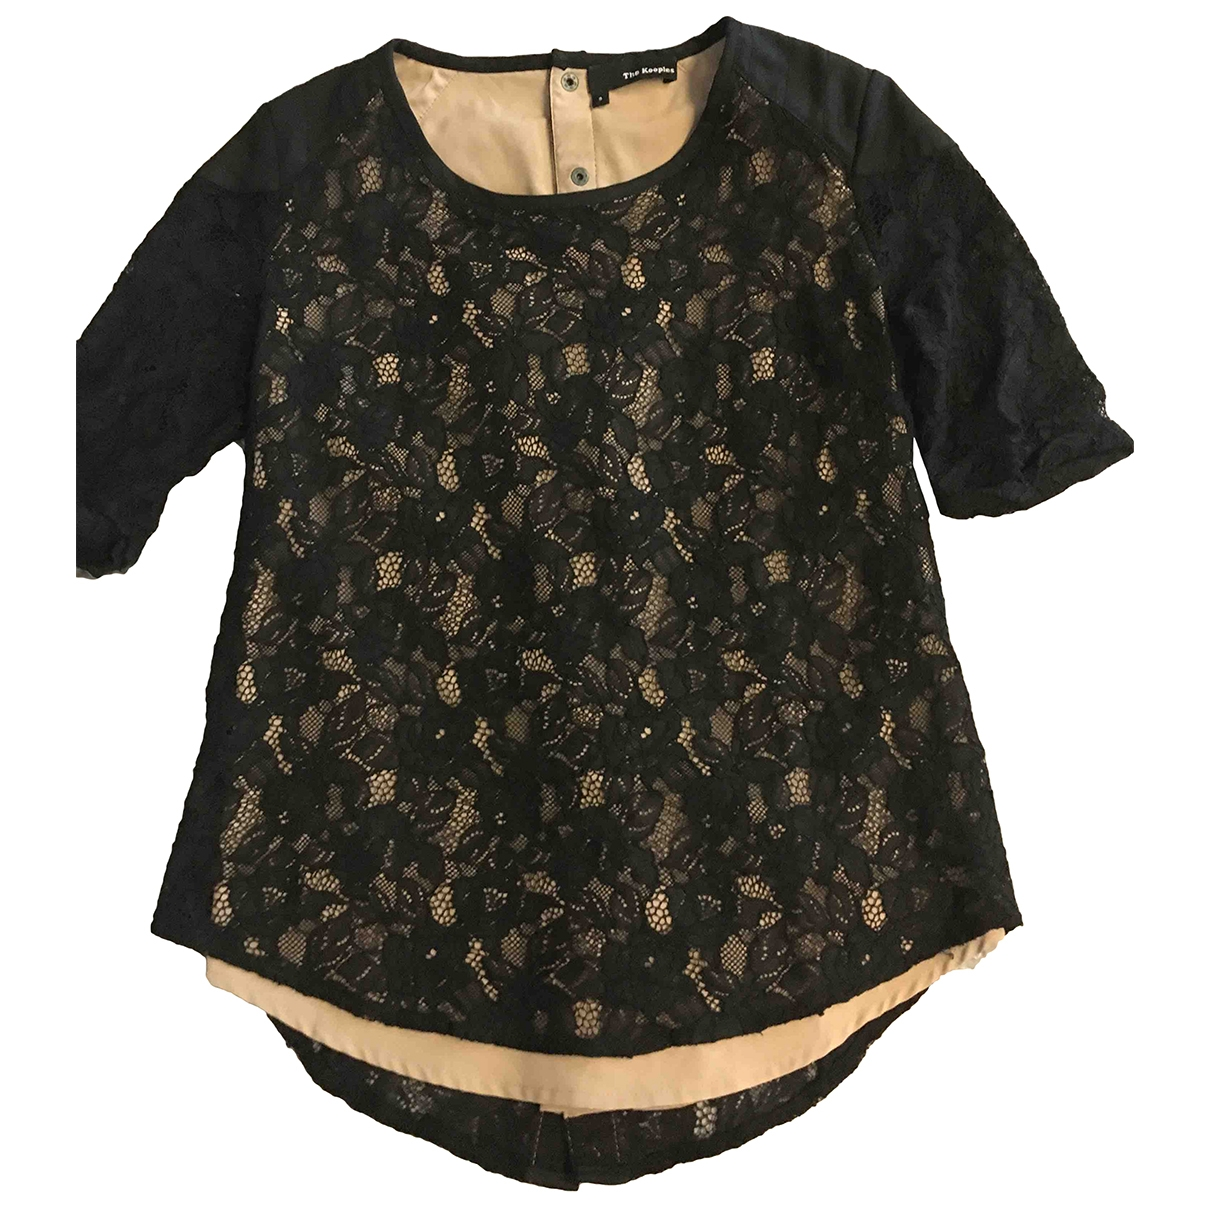 The Kooples Fall Winter 2019 Black Lace  top for Women 38 FR